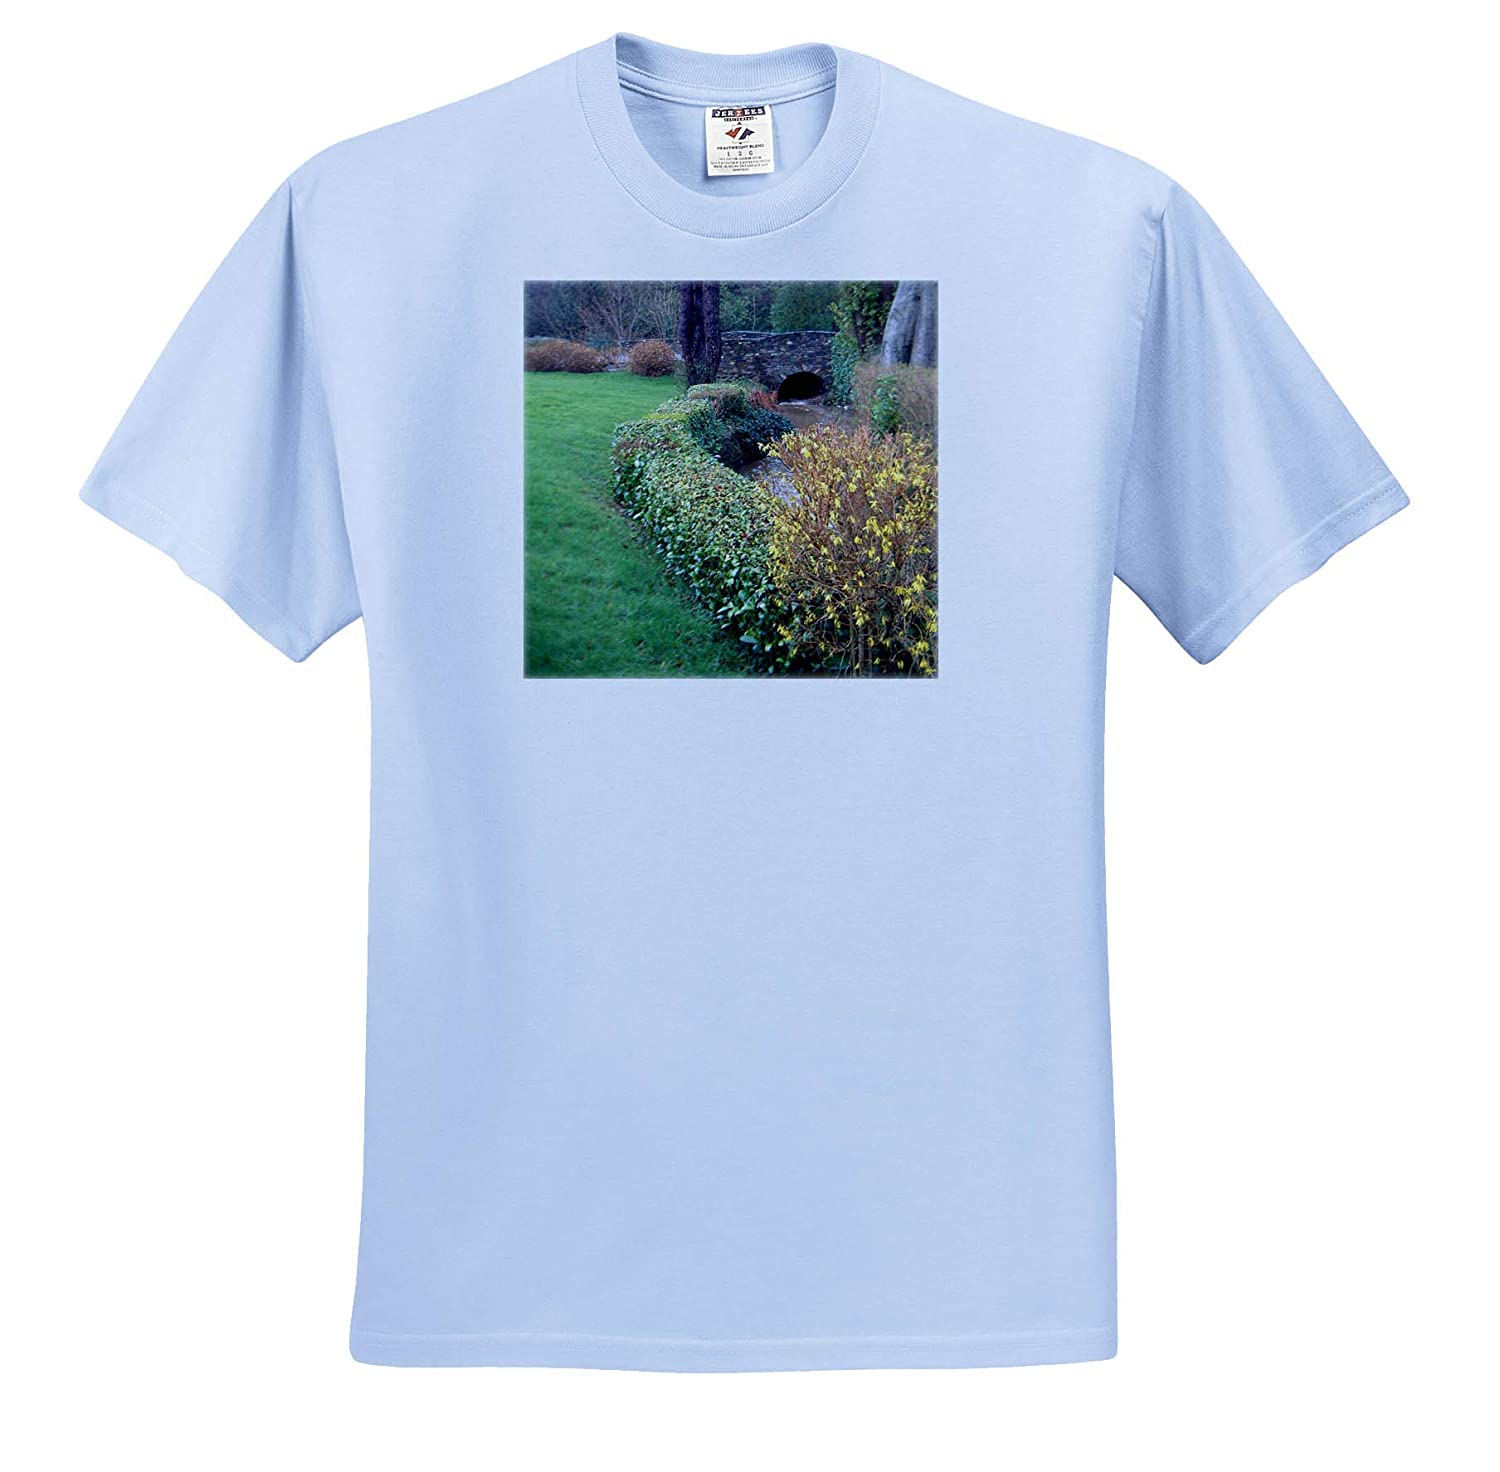 A Landscape in Ireland with Green Grass Leading to a Bridge 3dRose Jos Fauxtographee Ireland Landscape T-Shirts